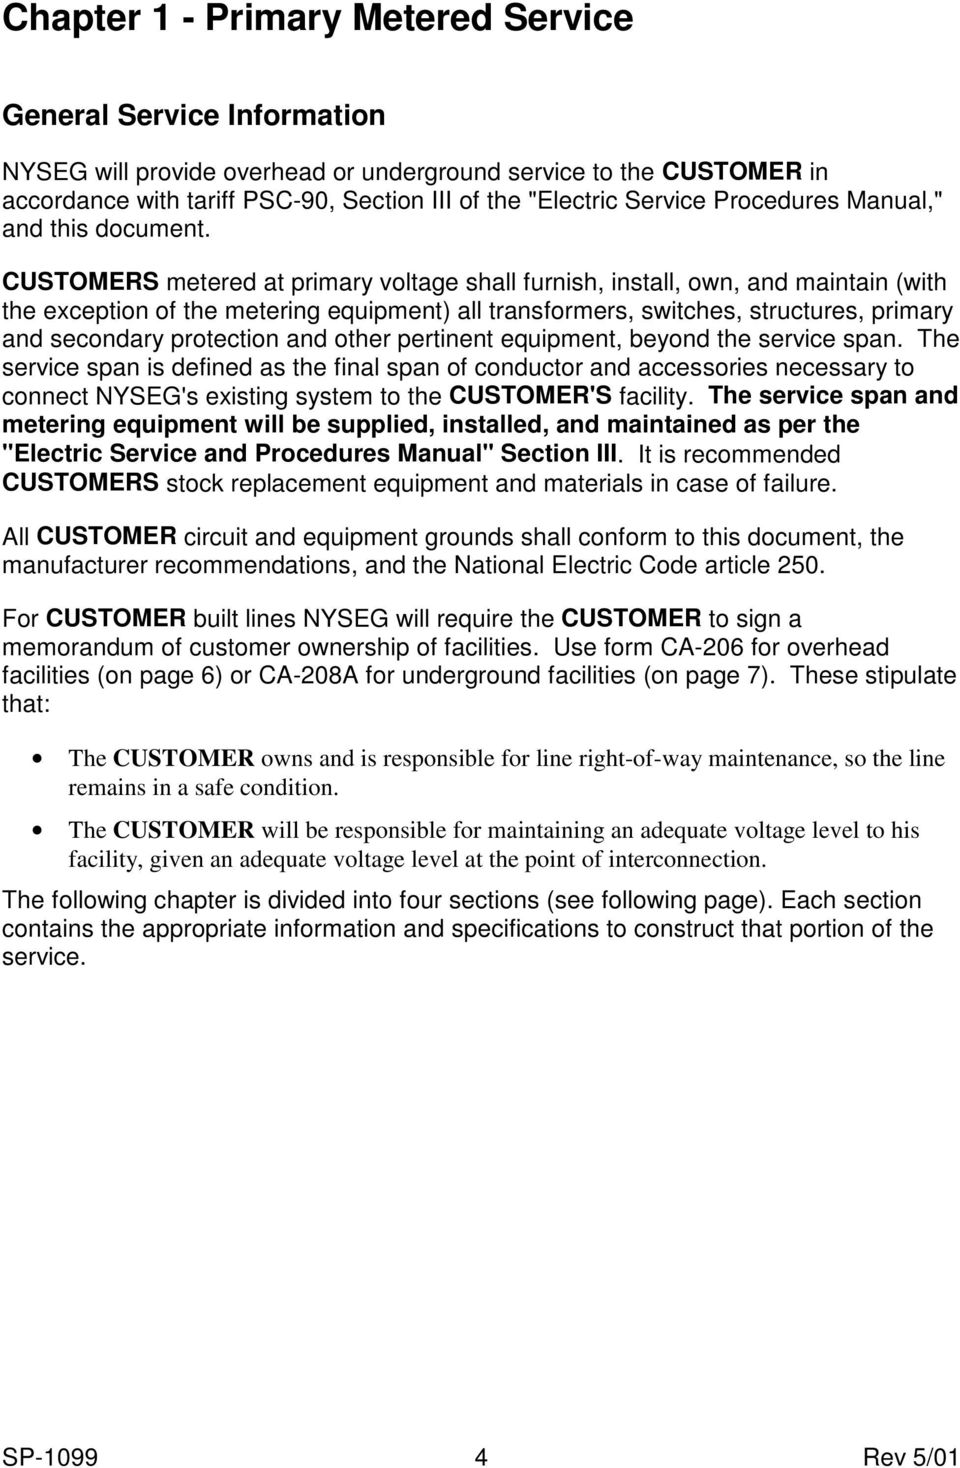 nyseg specification for electrical service